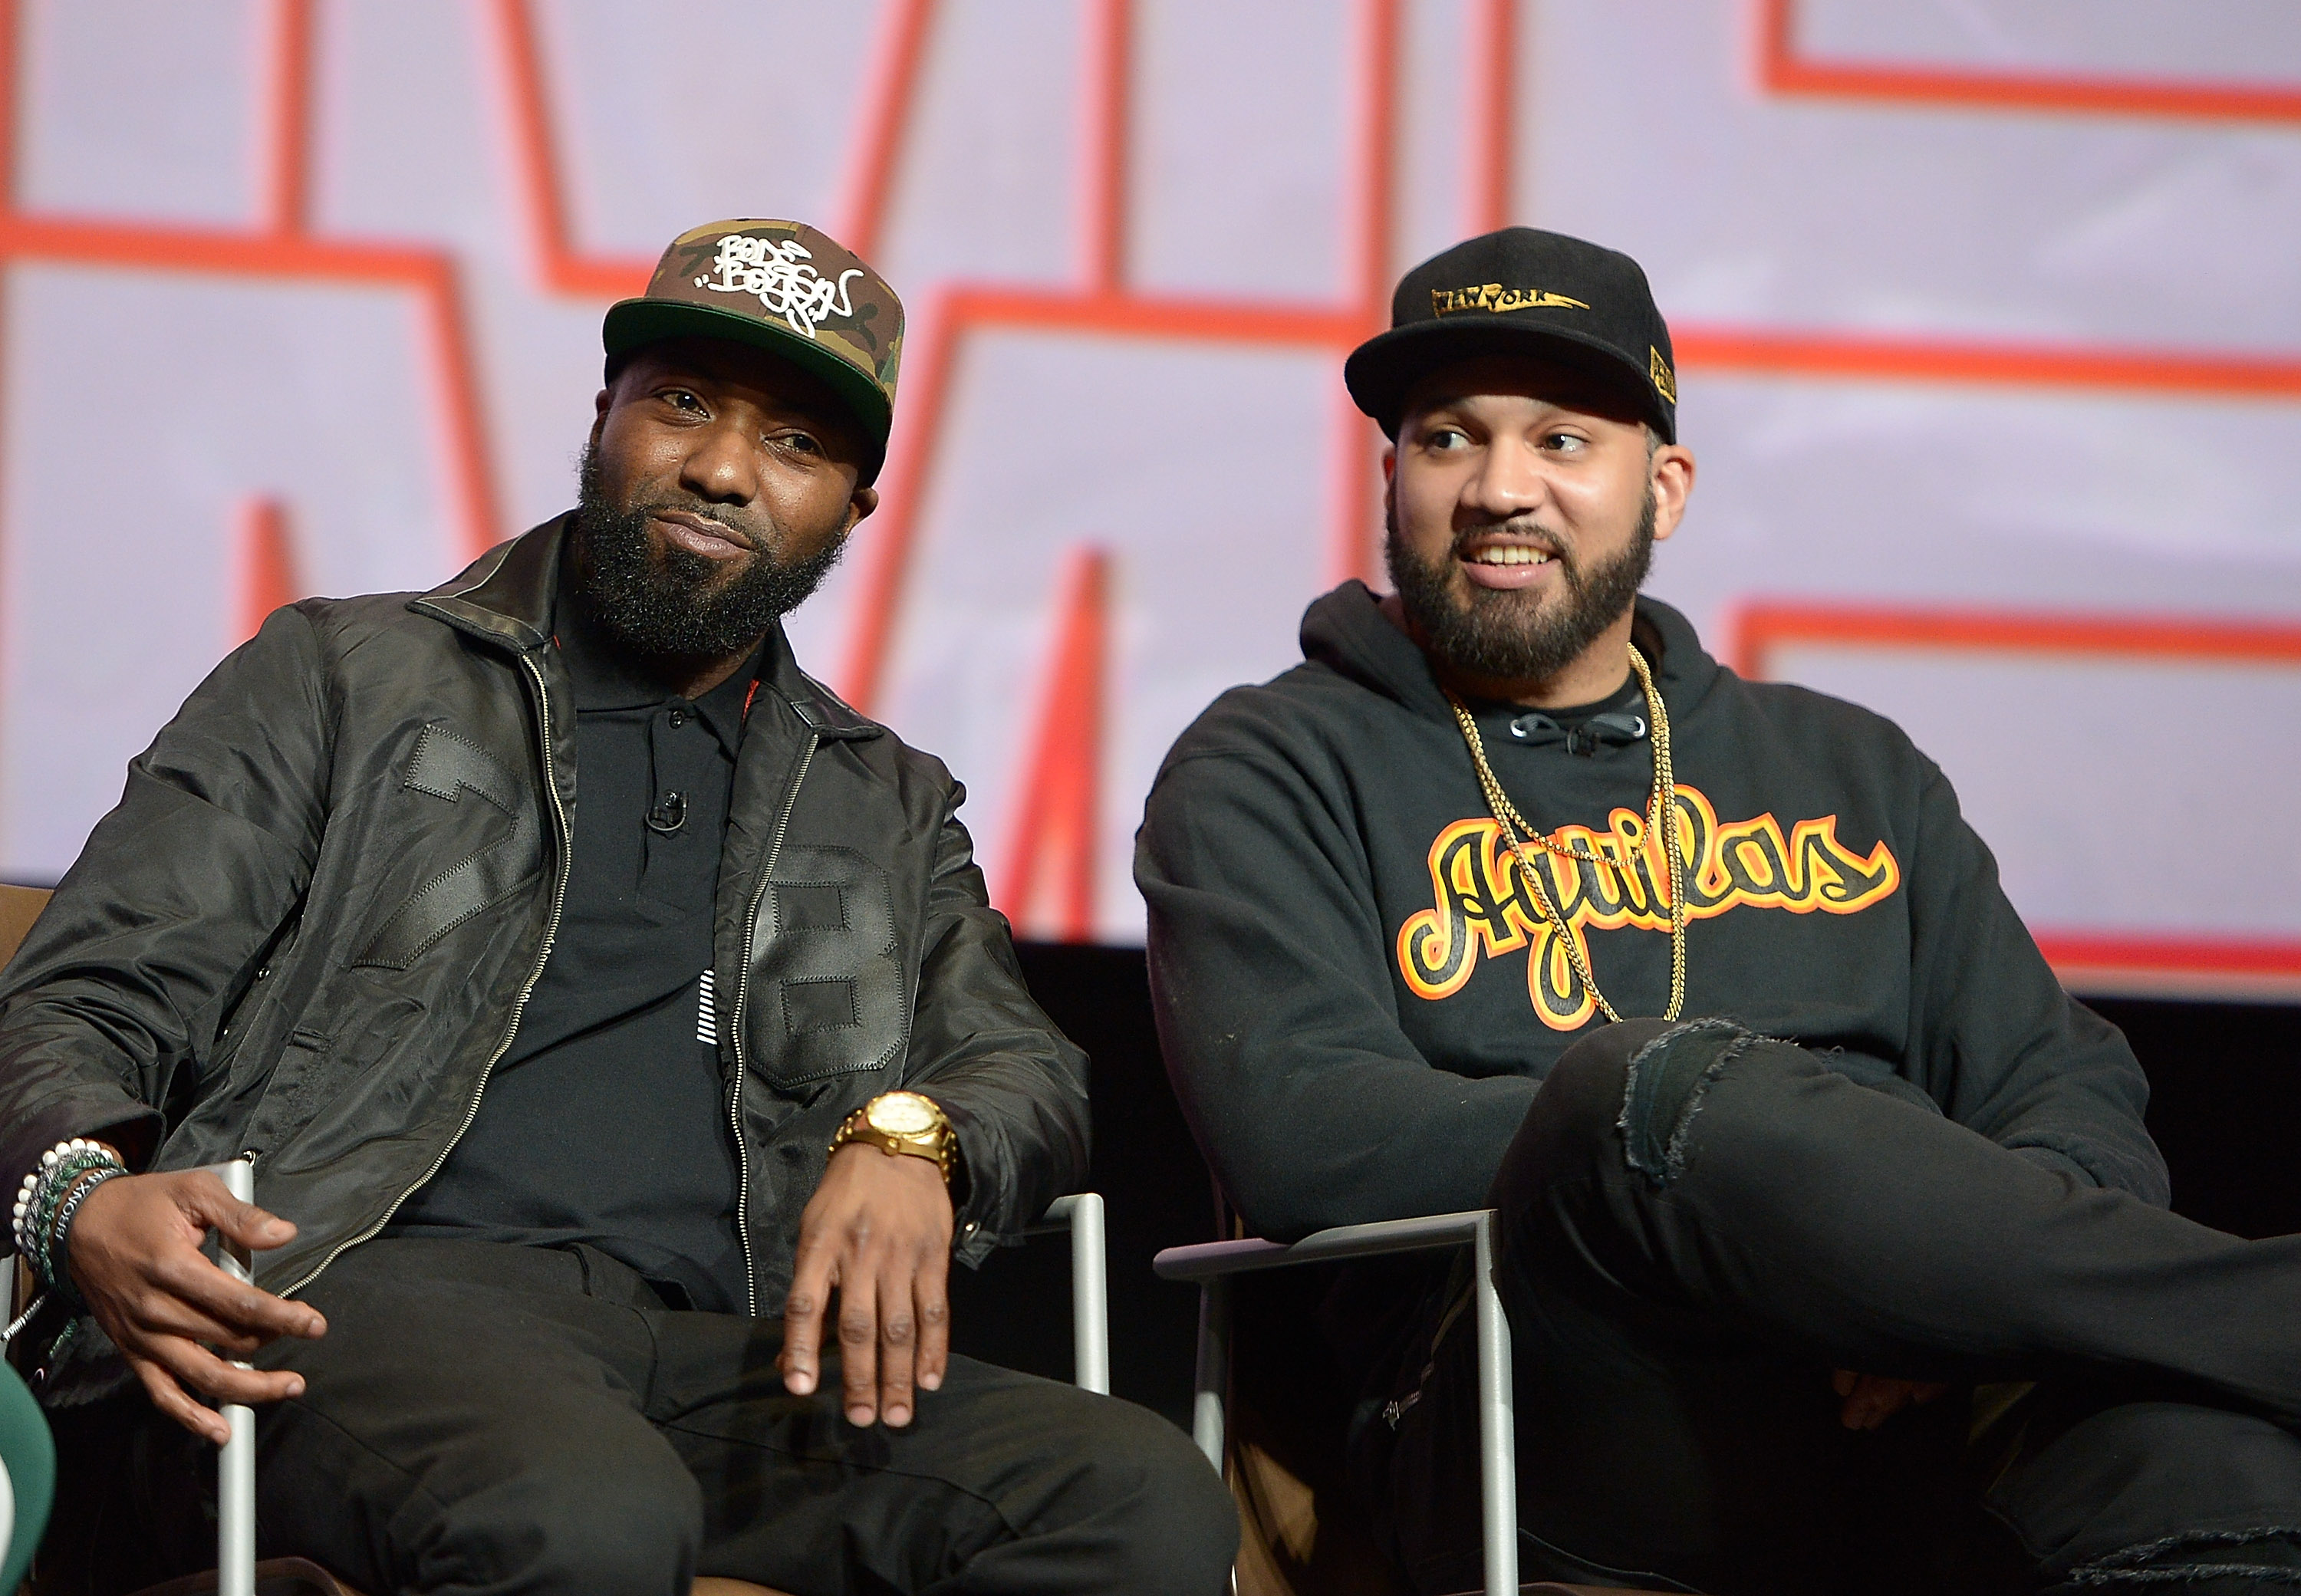 Desus Nice and The Kid Mero participate in a q&a at the FYC Event for VICELAND's DESUS & MERO at Saban Media Center on April 20, 2018 in North Hollywood, California.